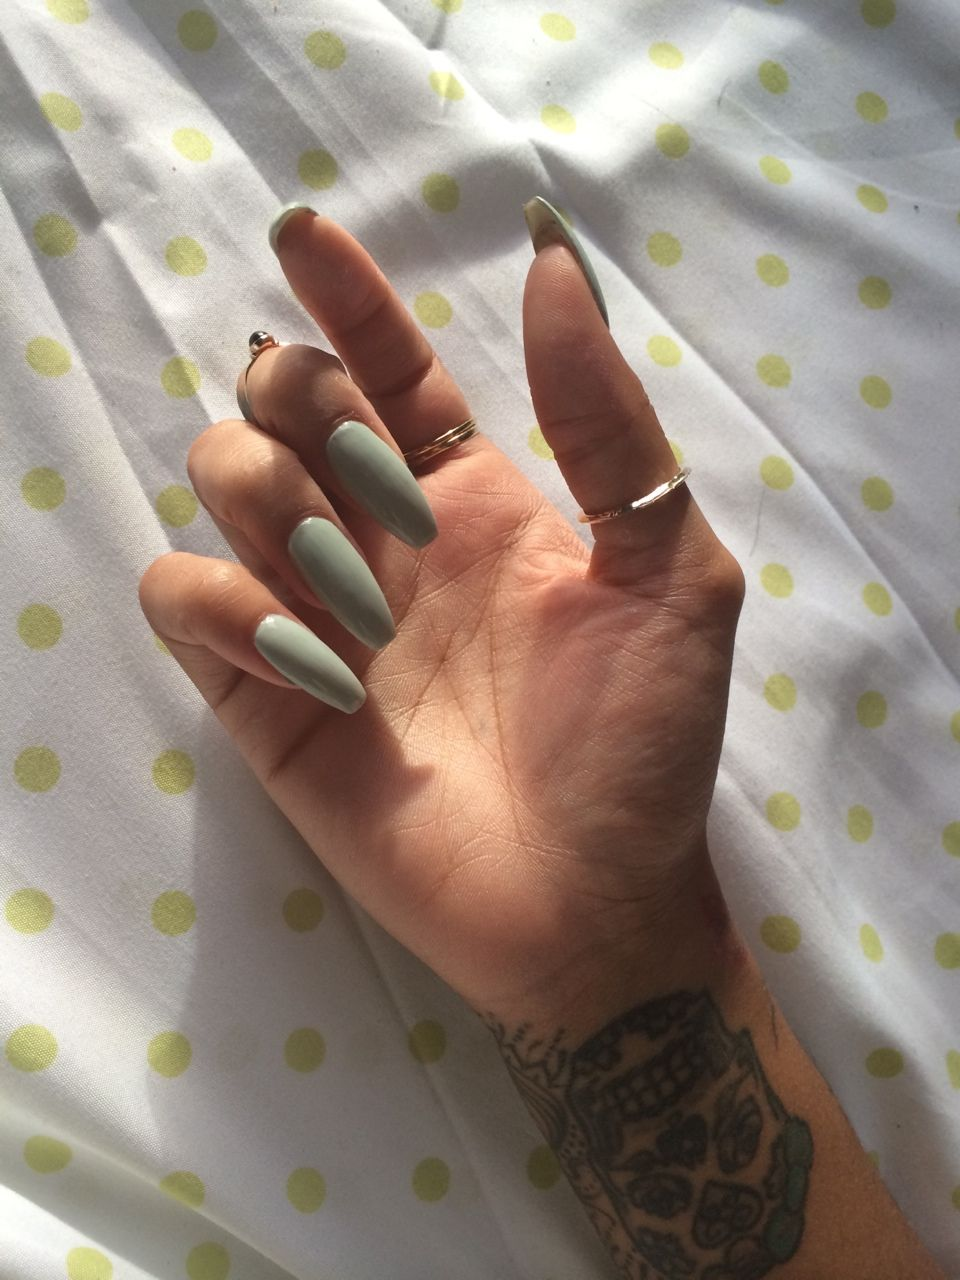 Pinterest: Nuggwifee | Nails and tutorials on how to grow your nails ...